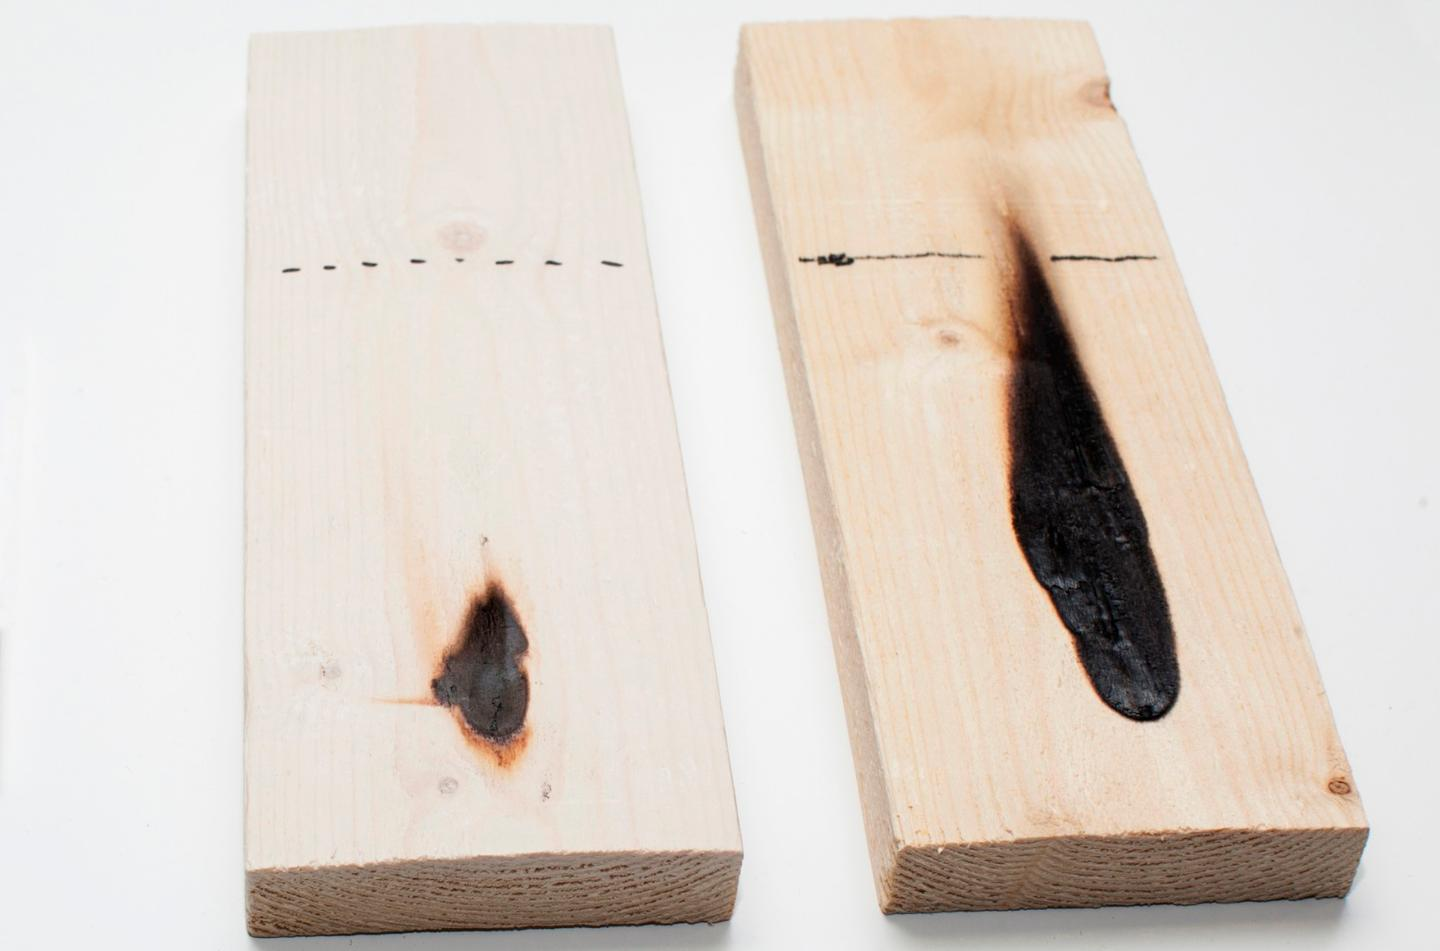 HefCel-coated wood (left) and untreated wood, after a 30-second flame test